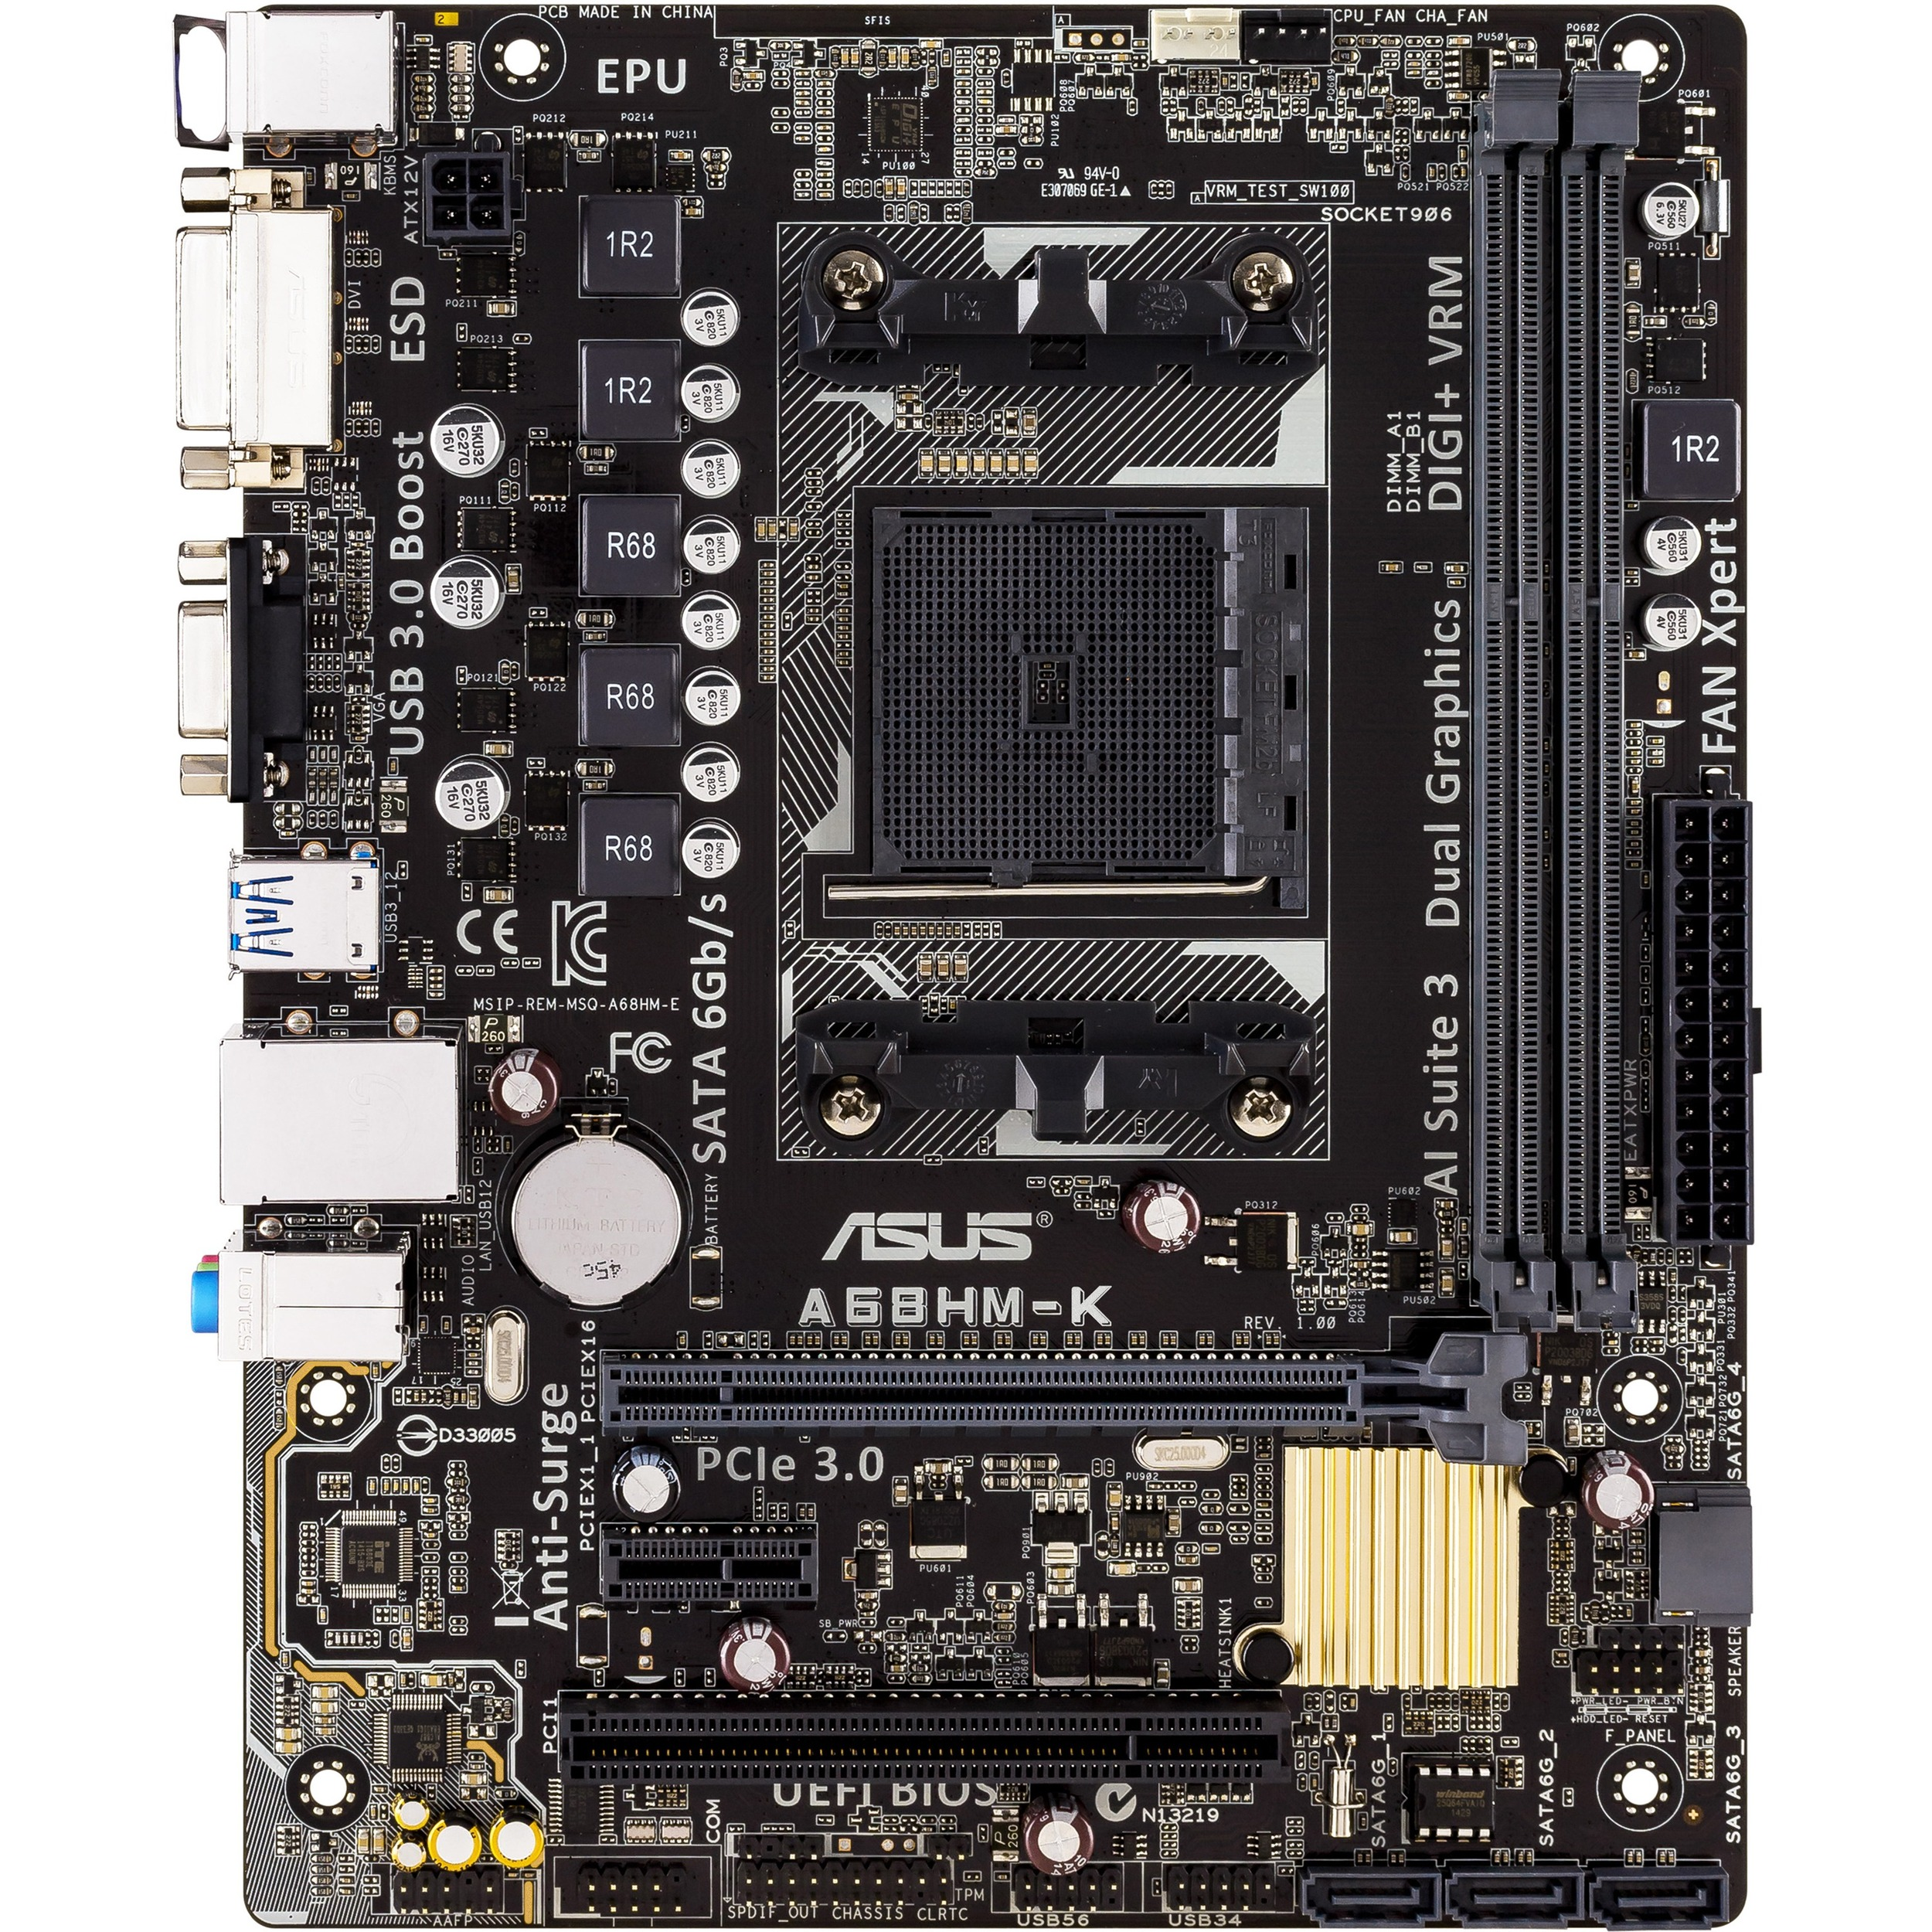 Asus A68HM-K Desktop Motherboard - AMD A68 Chipset - Socket FM2plus - Micro ATX - 1 x Processor Support - 32 GB DDR3 SDRAM Maximum RAM - 2.40 GHz O.C. Memory Speed Supp